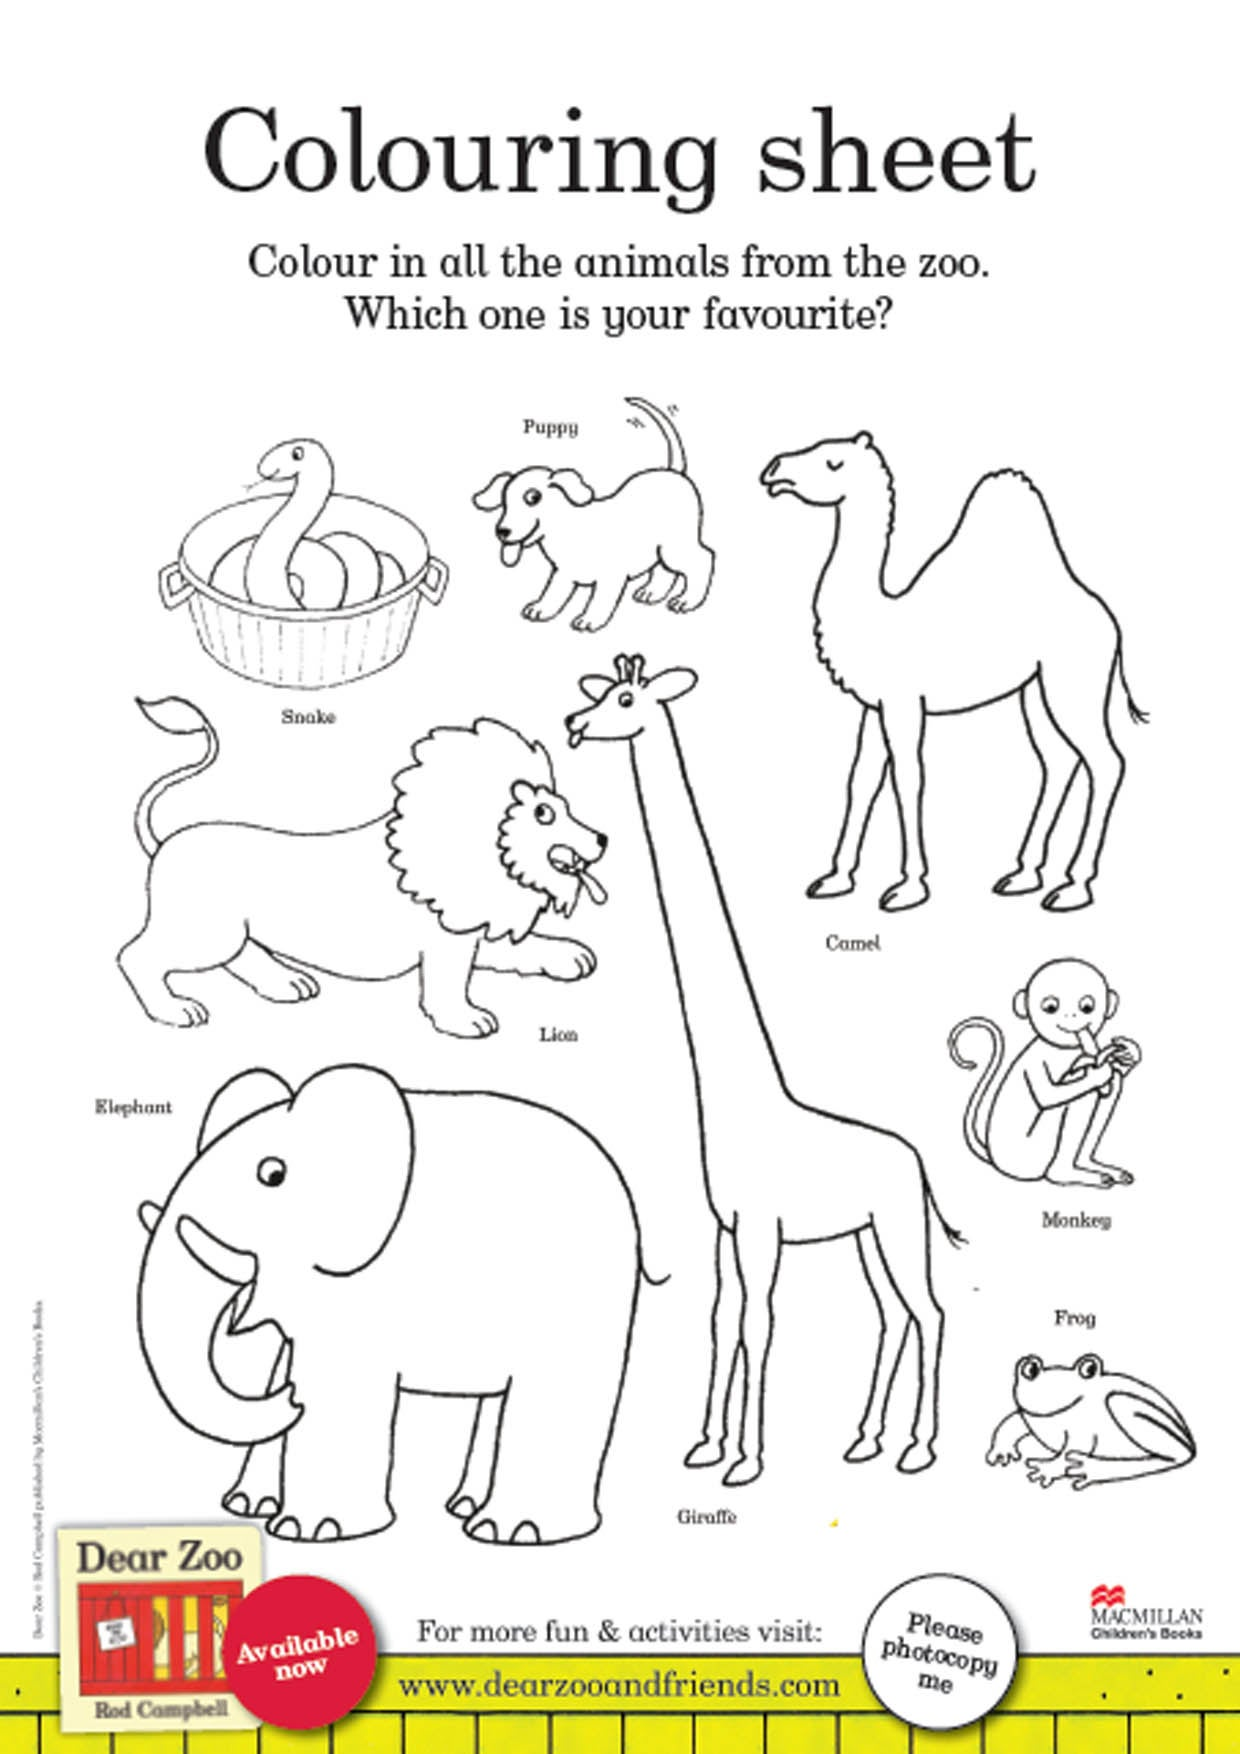 DearZoo_ActivitySheets_Colouring_2021.jpg